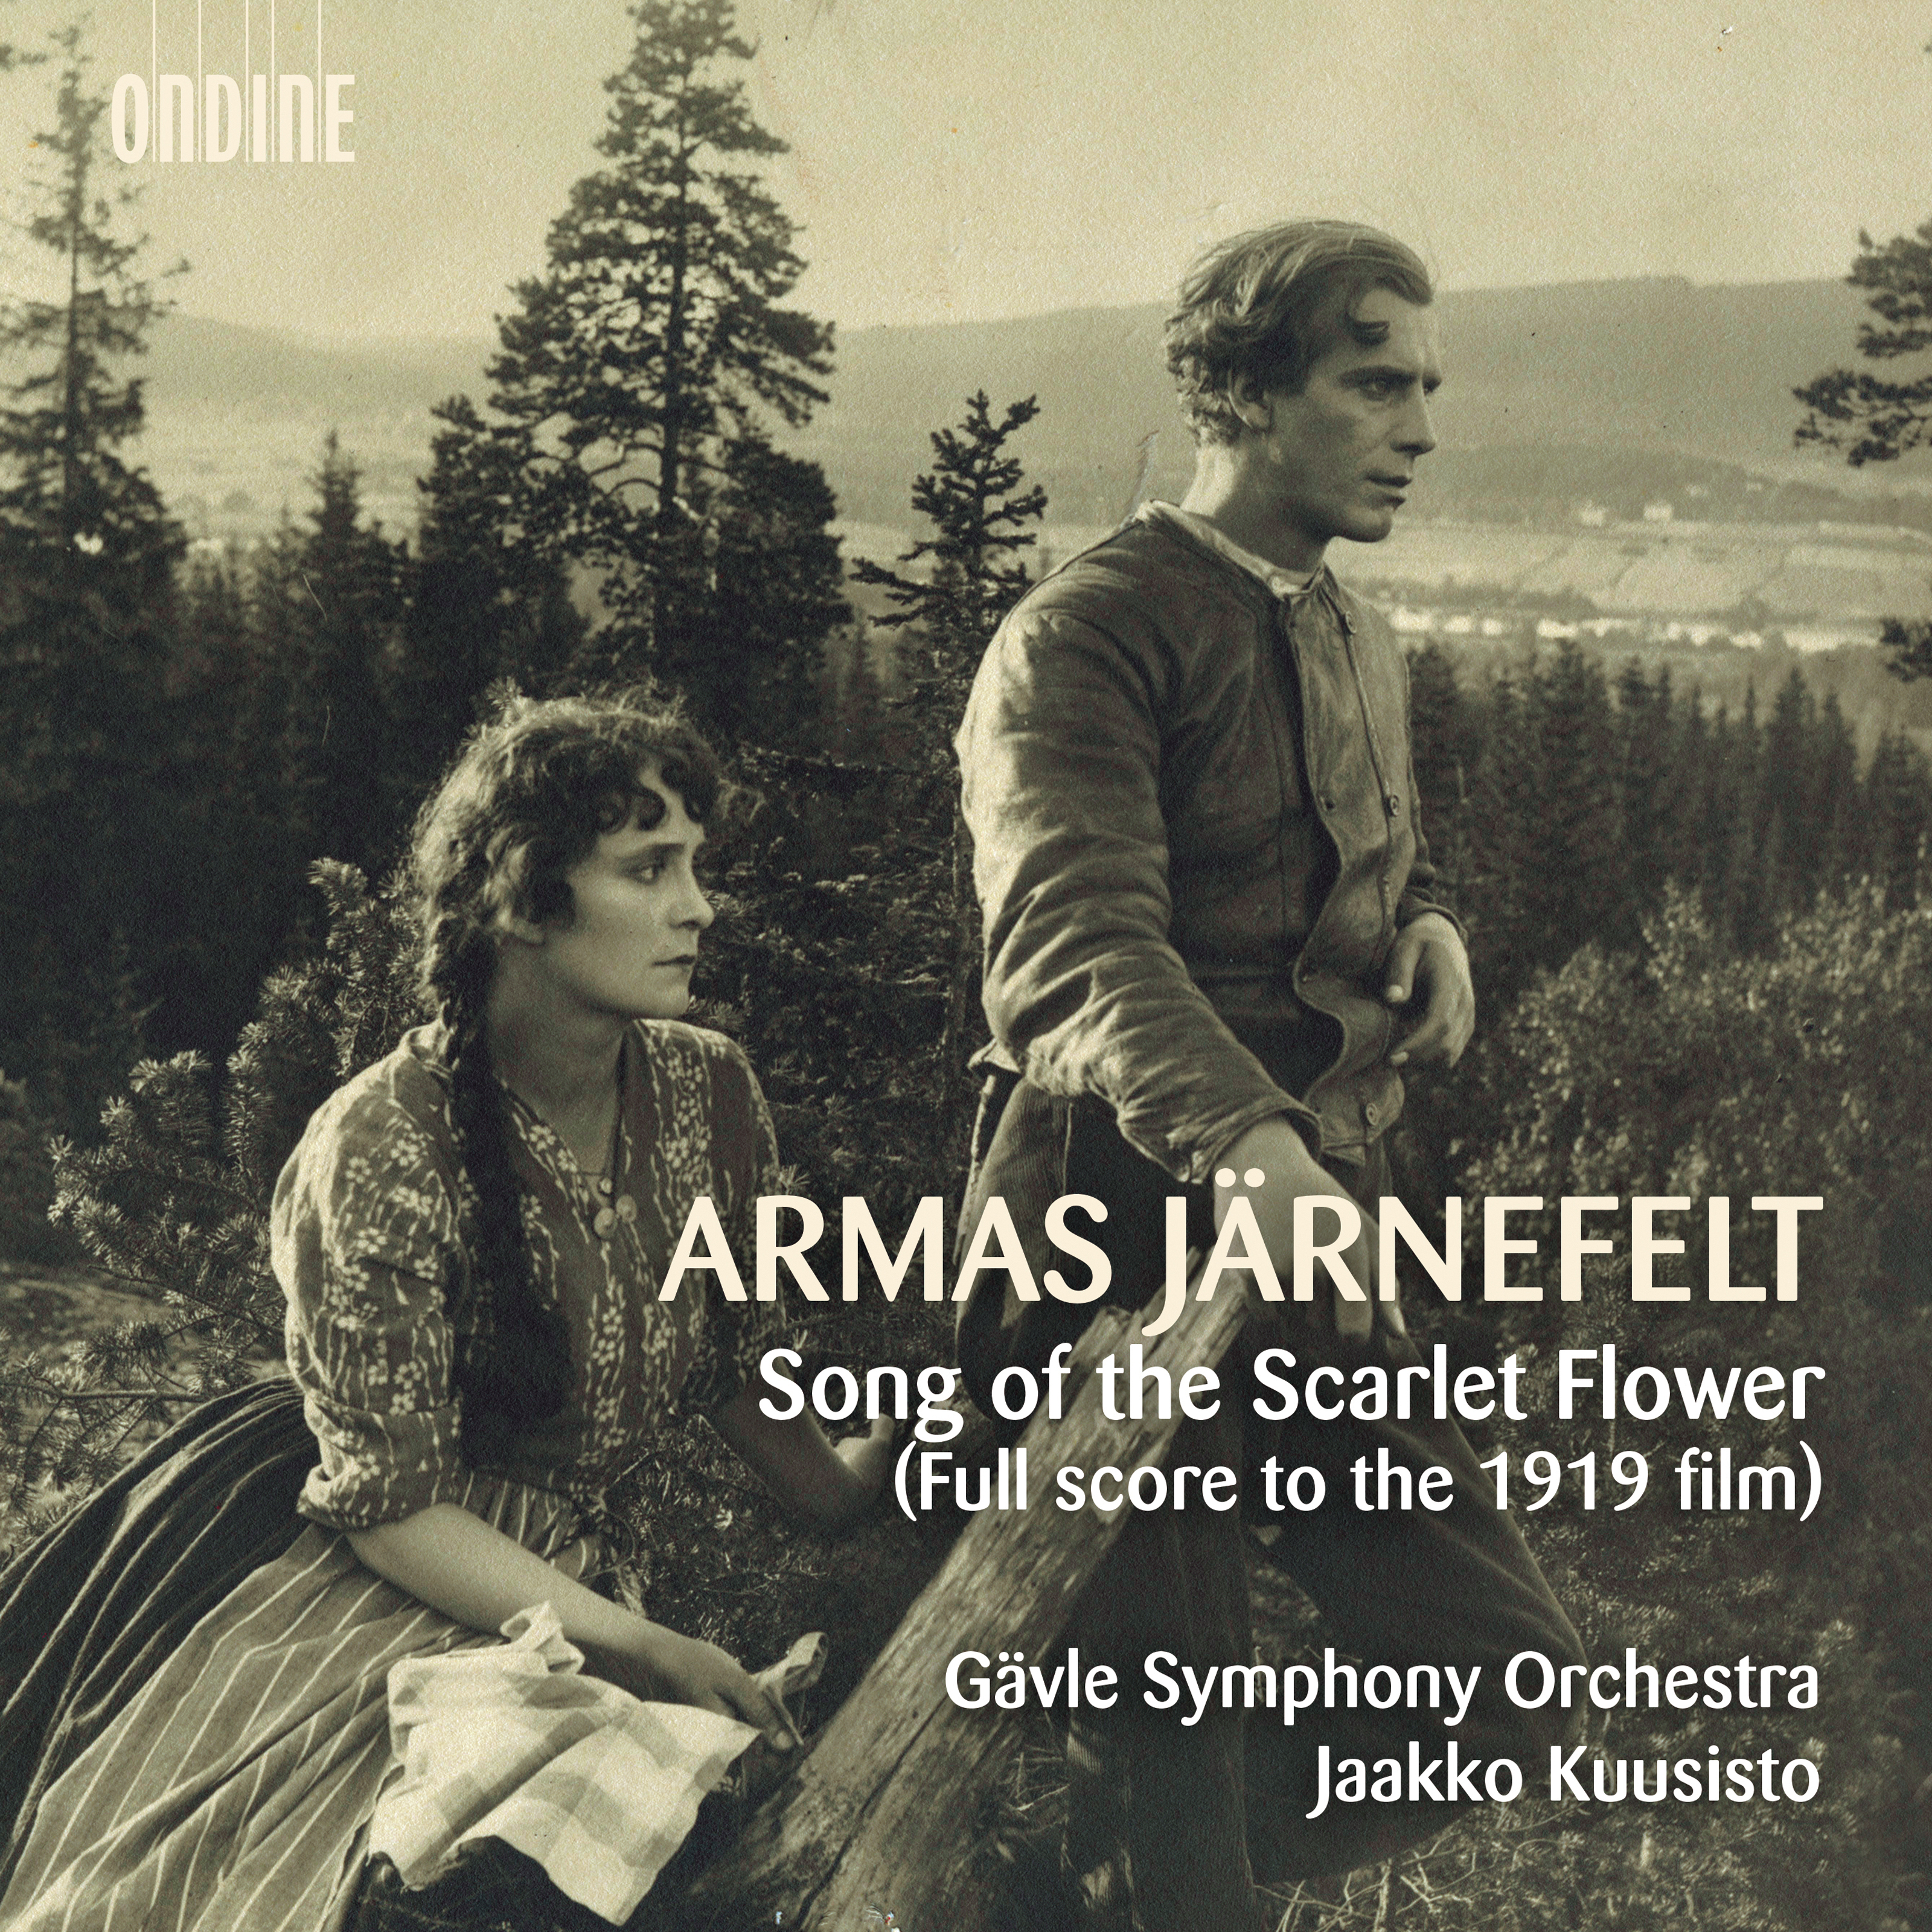 Song of the Scarlet Flower (Full Score to the 1919 Film)